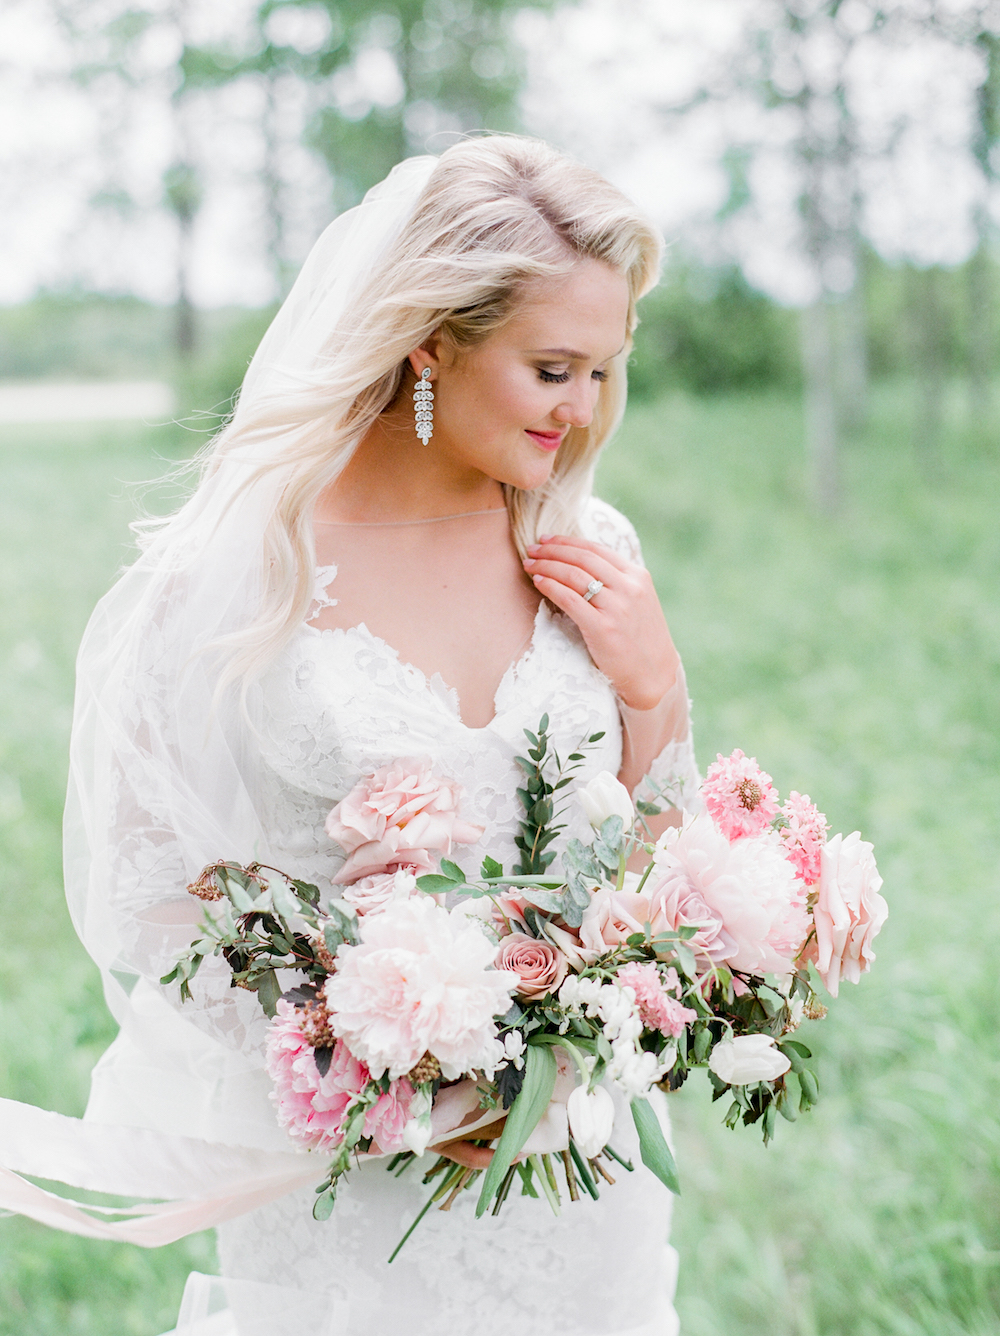 Blush Peony Bridal Bouquet - Stone House Creative